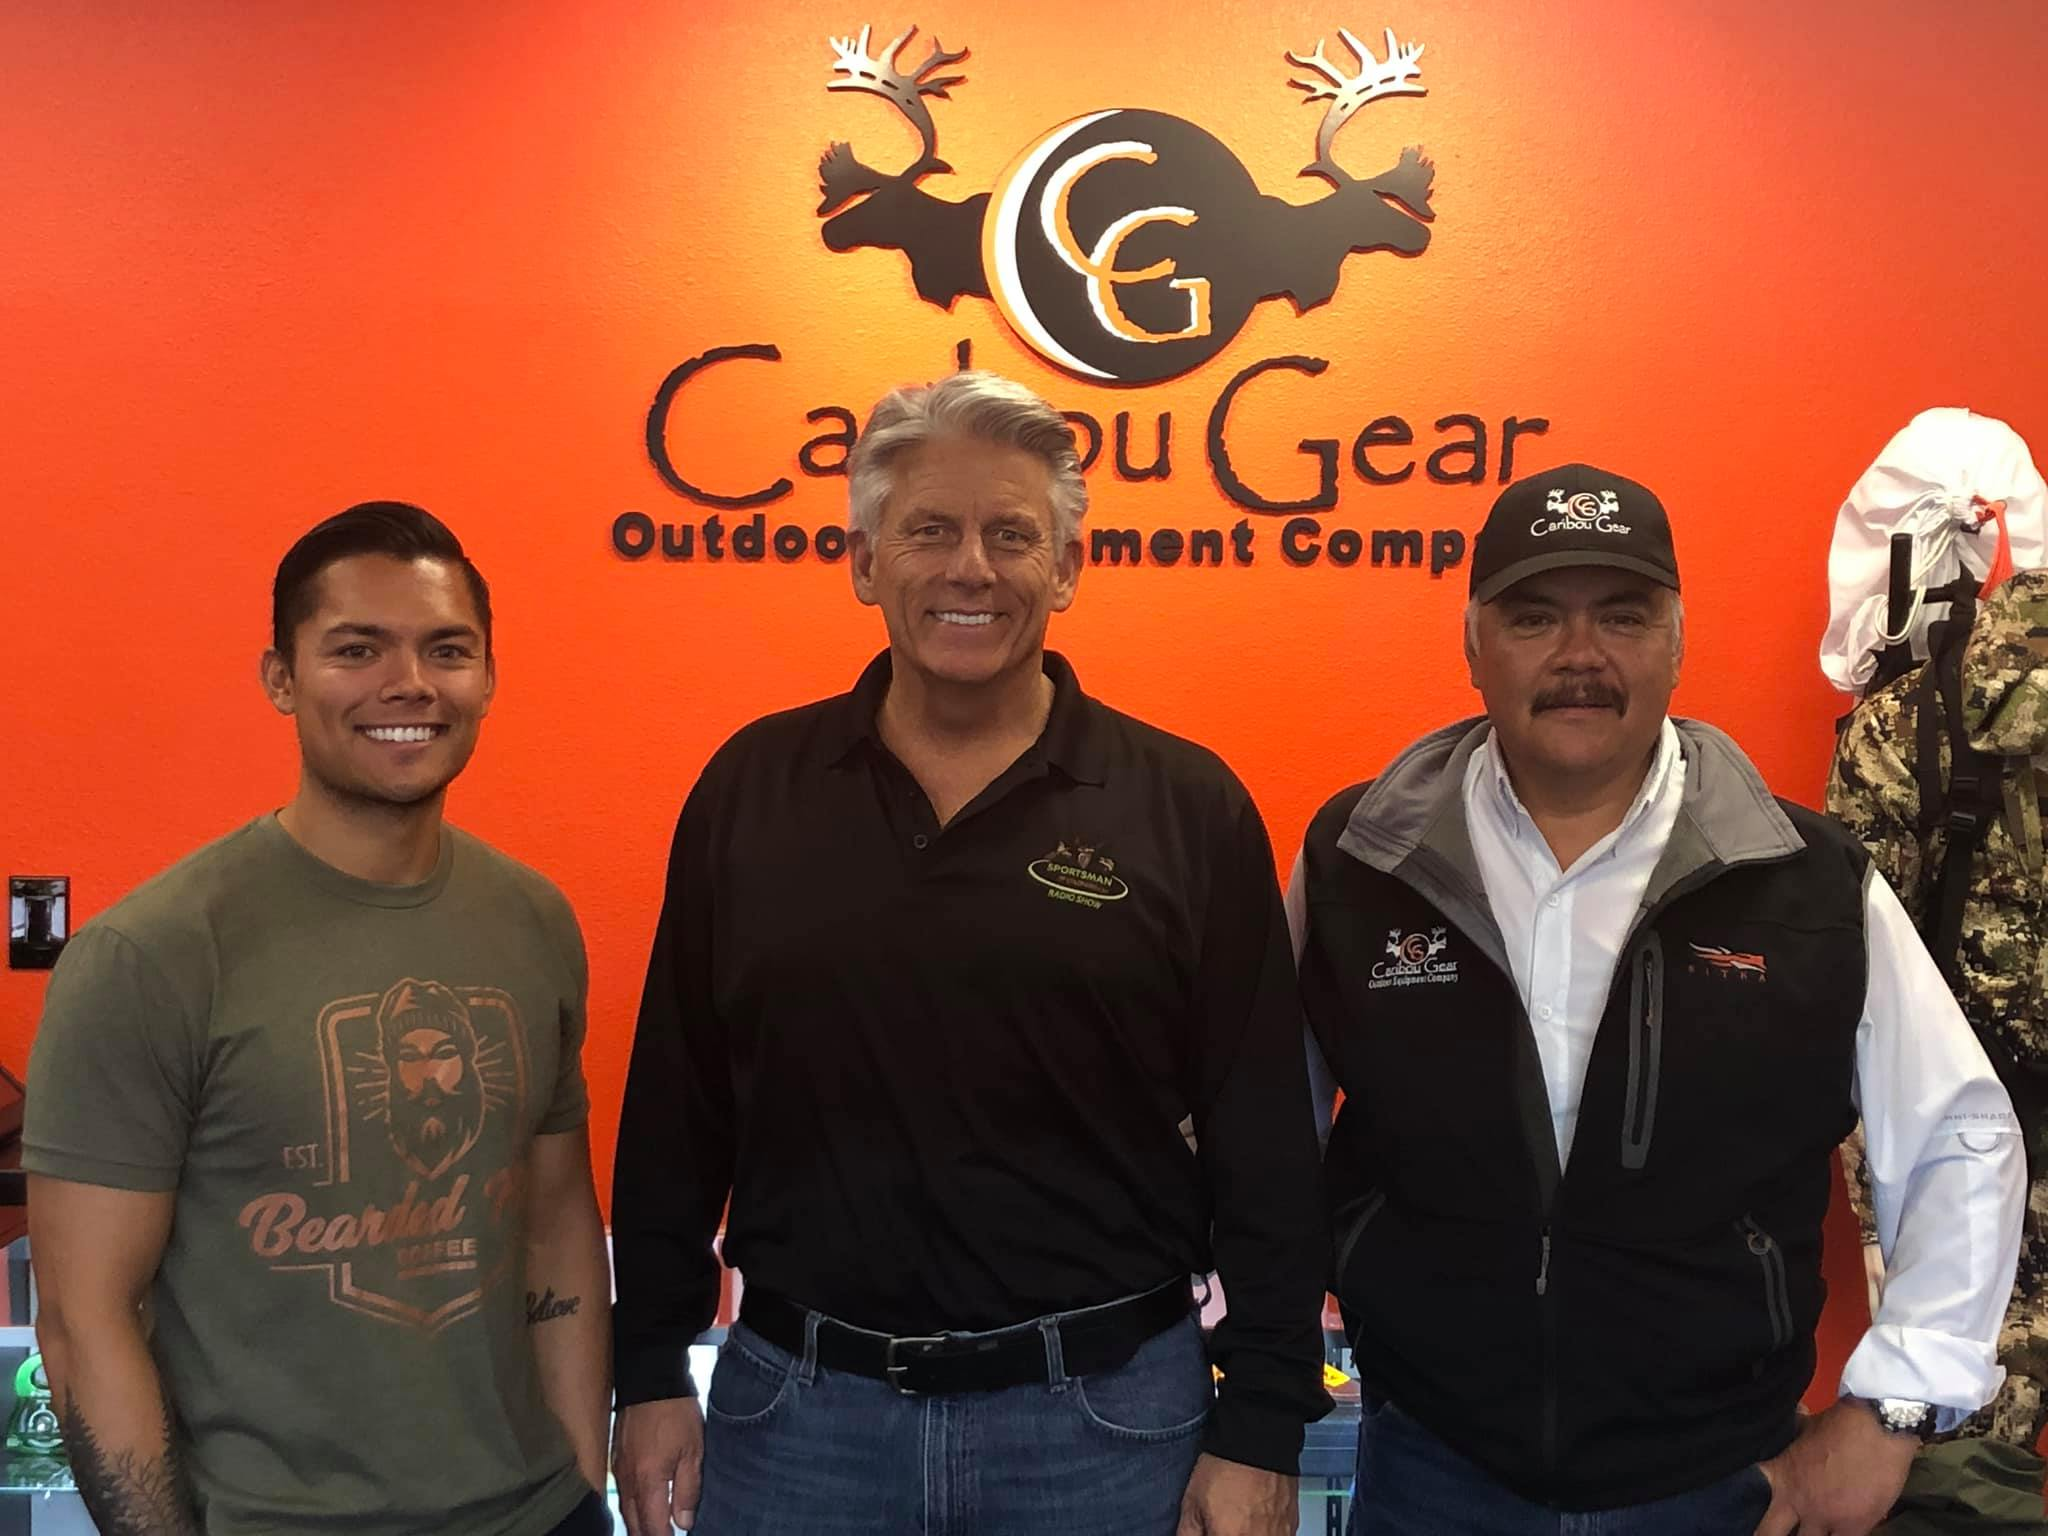 June 22, 2019: Colorado Bowhunting Association & Hunting Gear Outfitters Open House